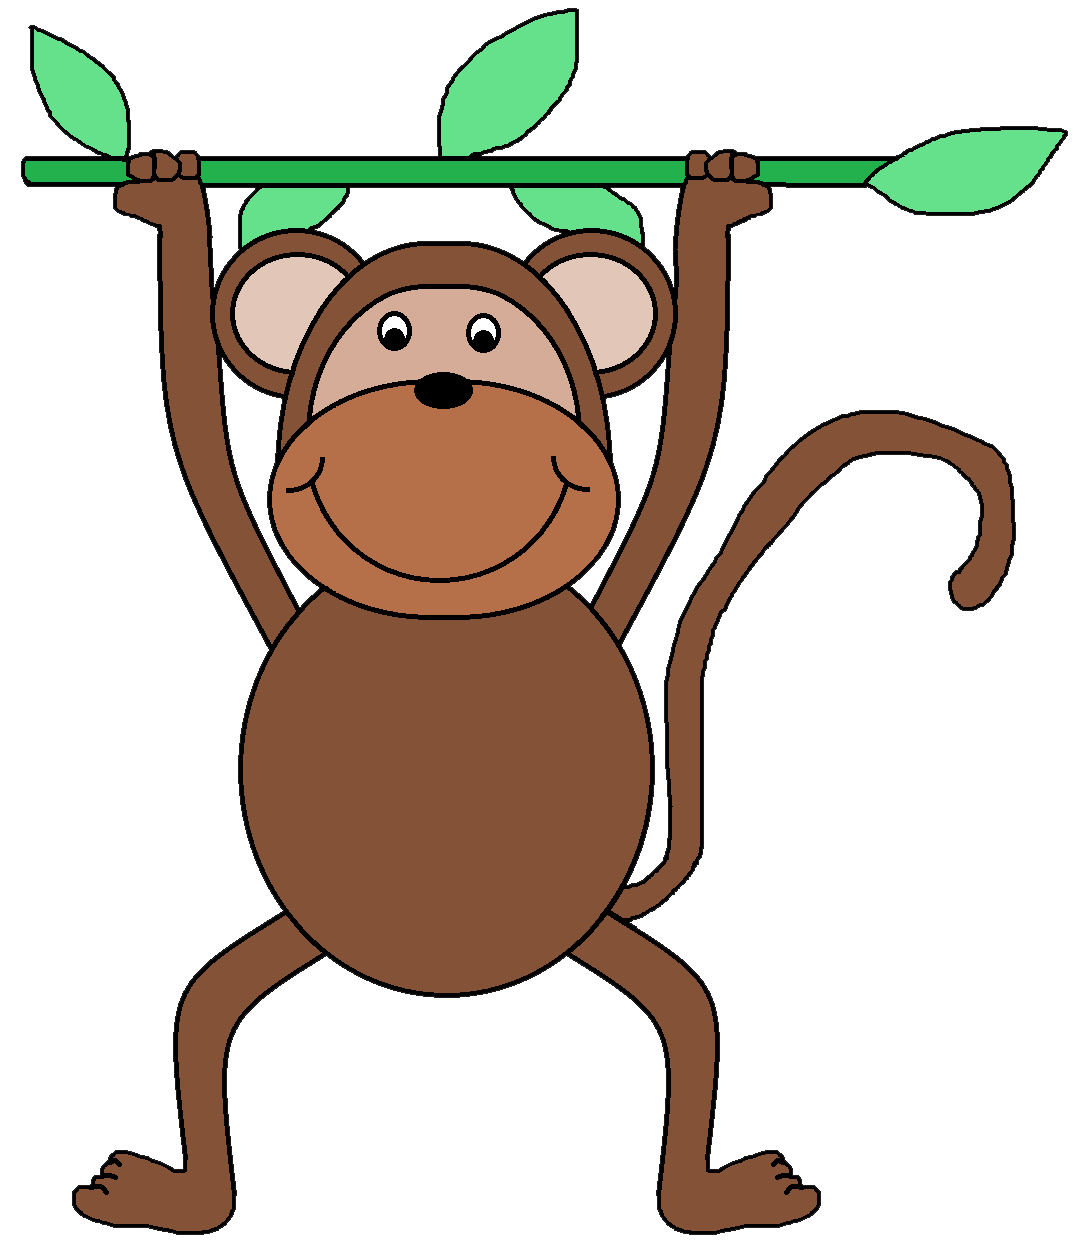 Monkey for teachers free. Monkeys clipart chimpanzee